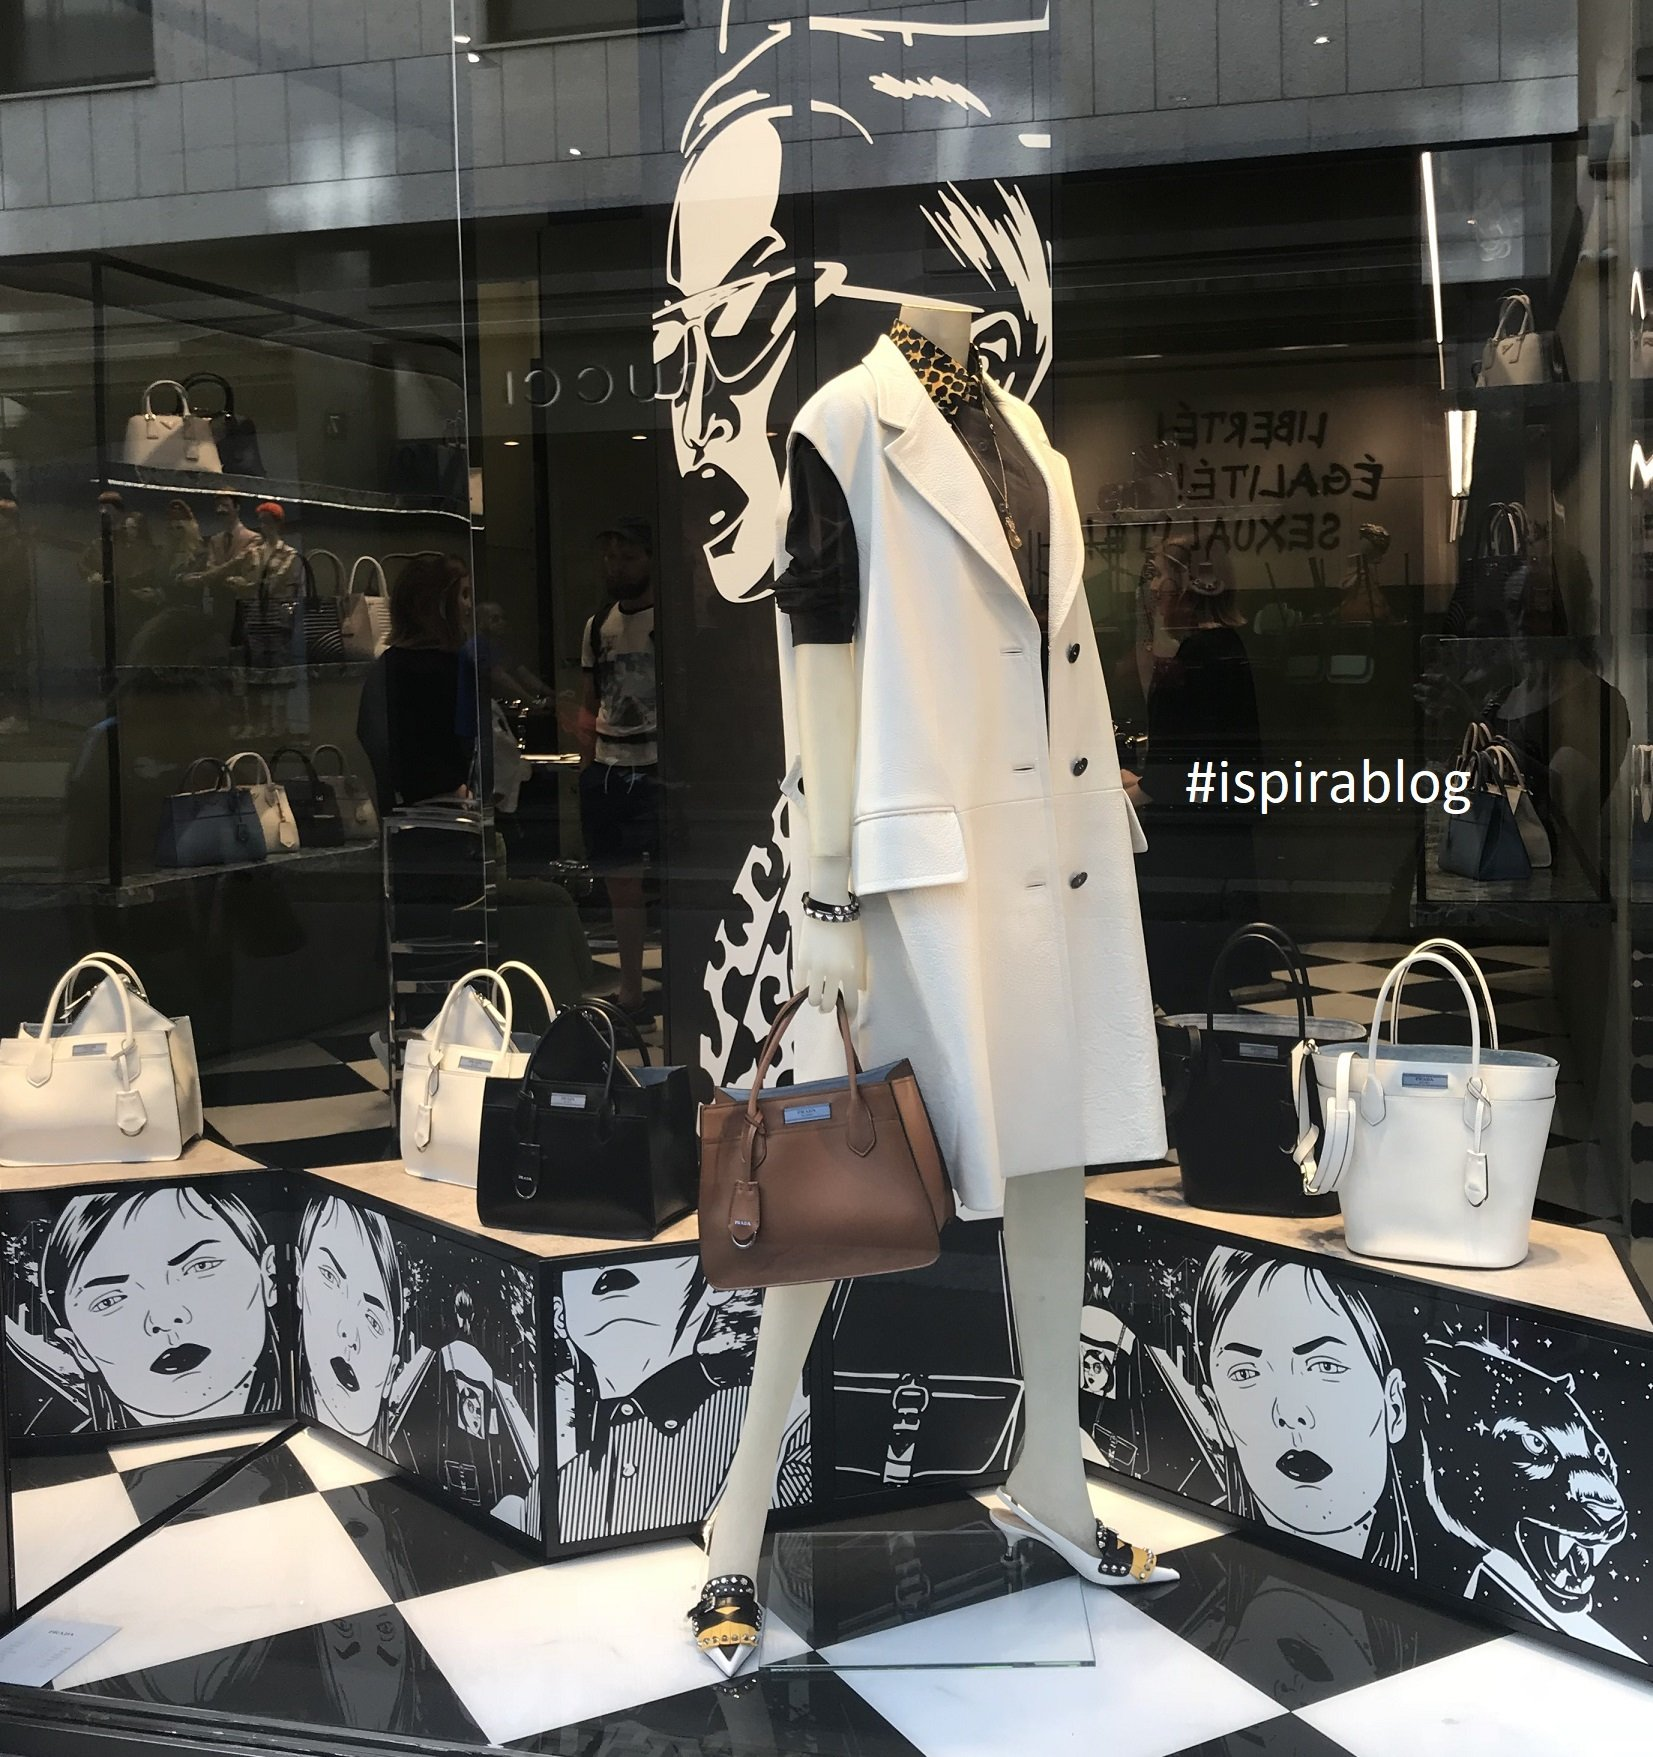 ... Prada - Milan - Summer 2018 - Womenswear Collection - black and white outfit with heeled shoes and leather handbags in three colours 2018-06-27 ...